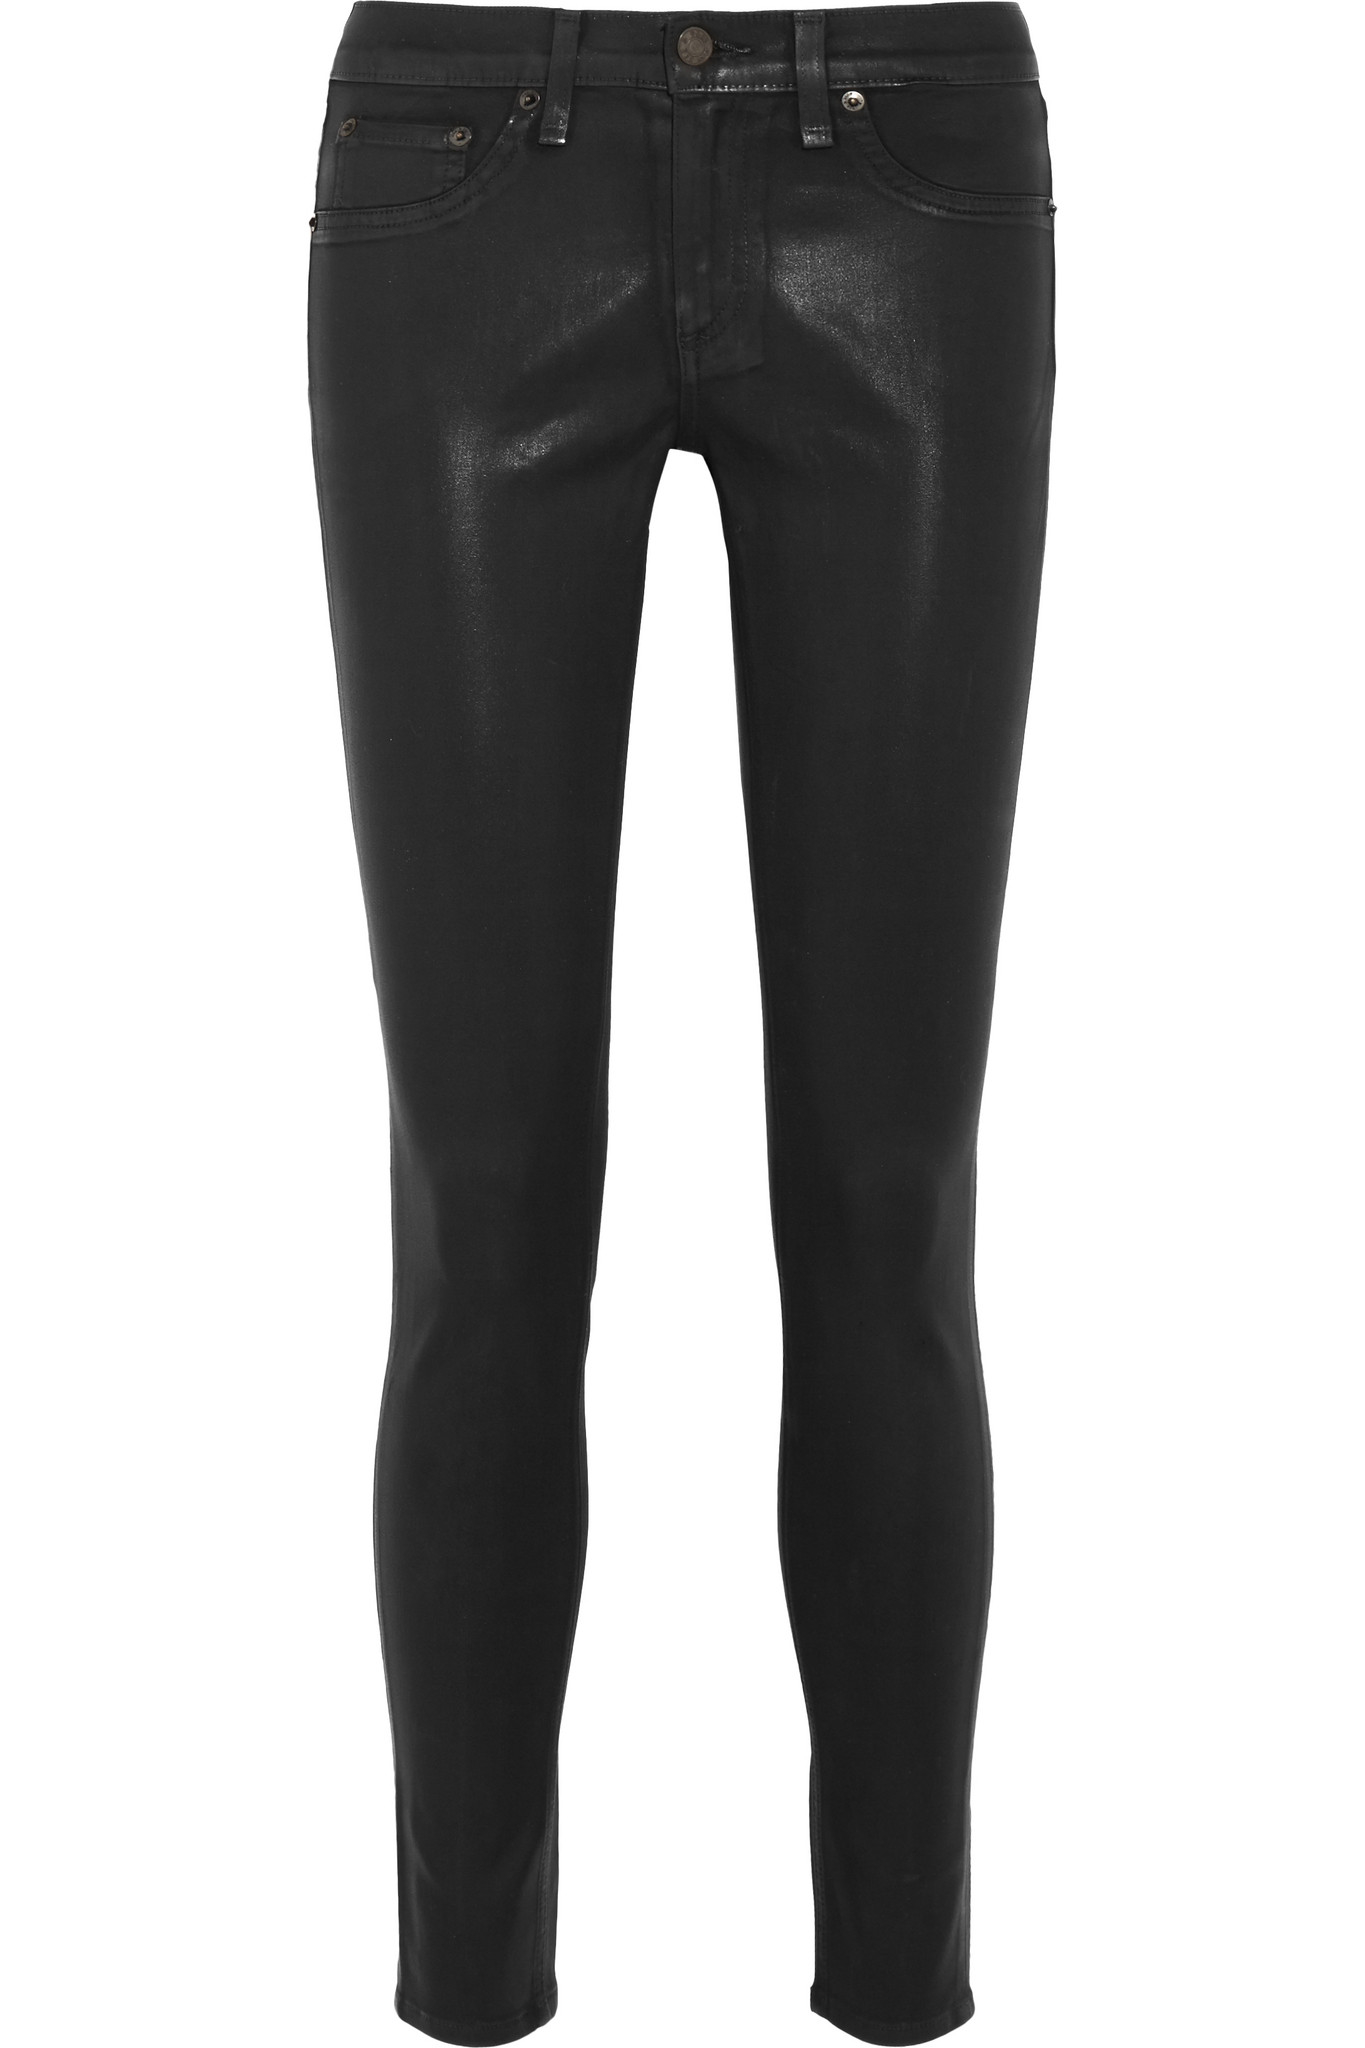 Rag & Bone low rise skinny jeans Huge Surprise Cheap Online Outlet From China For Sale Get Authentic Free Shipping Pictures usdZaIi